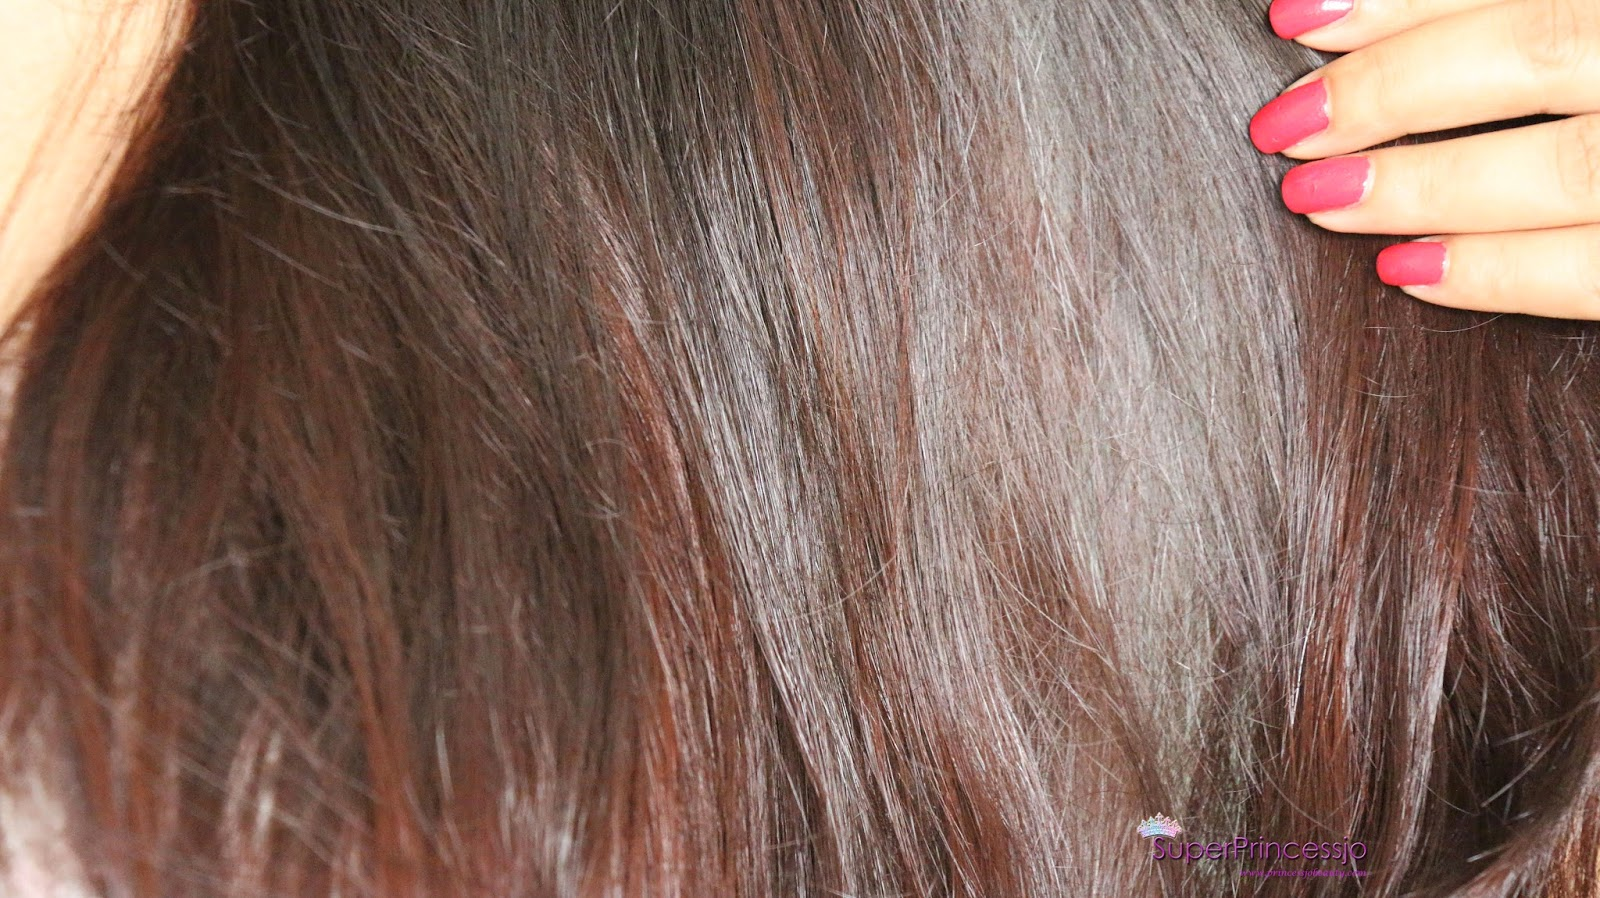 Steps for Applying Henna Hair Color, Applying Henna on Hair